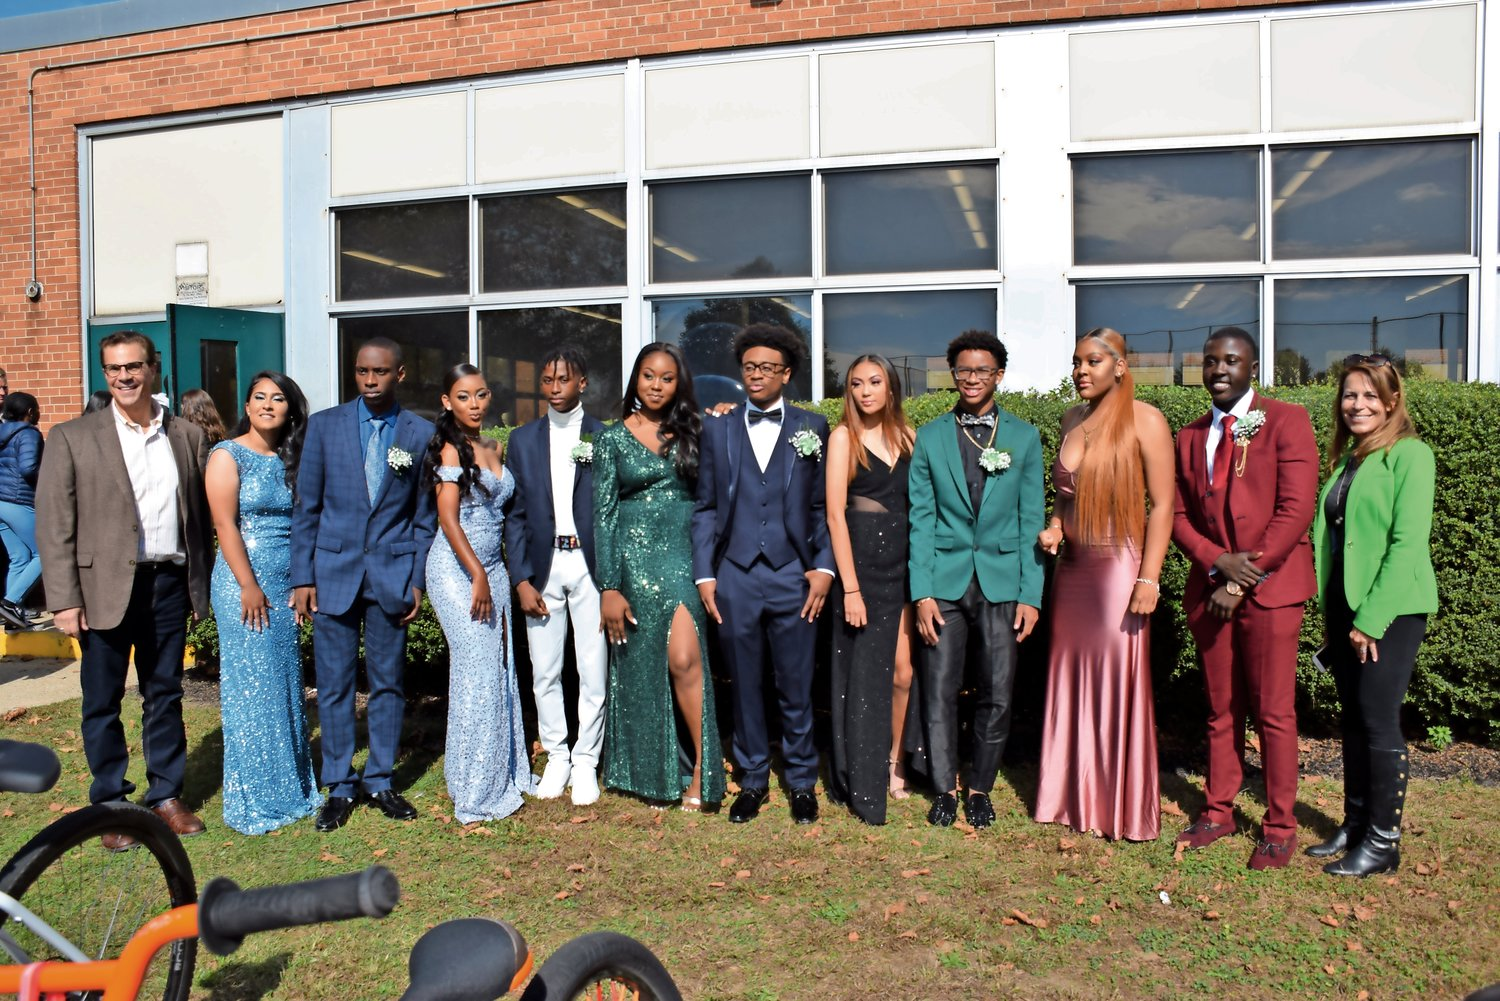 The Elmont Homecoming court.